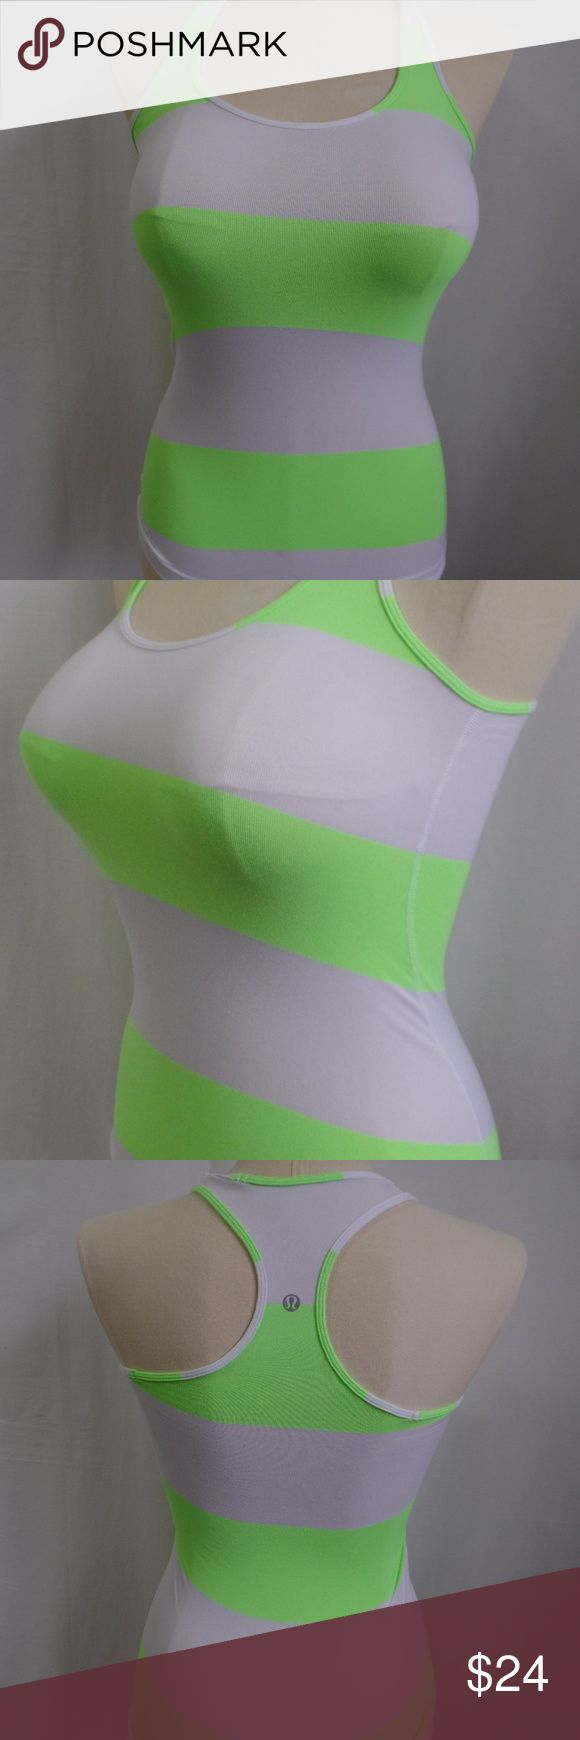 Lululemon Green White Stripe Racerback Tank Top 2 This is a Lululemon Cool Racerback neon green and white stripe tank top.   Size Women's 2  Content content and care tag was removed   Measurements Chest  24  Overall Length 25    Condition Pre-owned; tank top is in very good condition lululemon athletica Tops Tank Tops